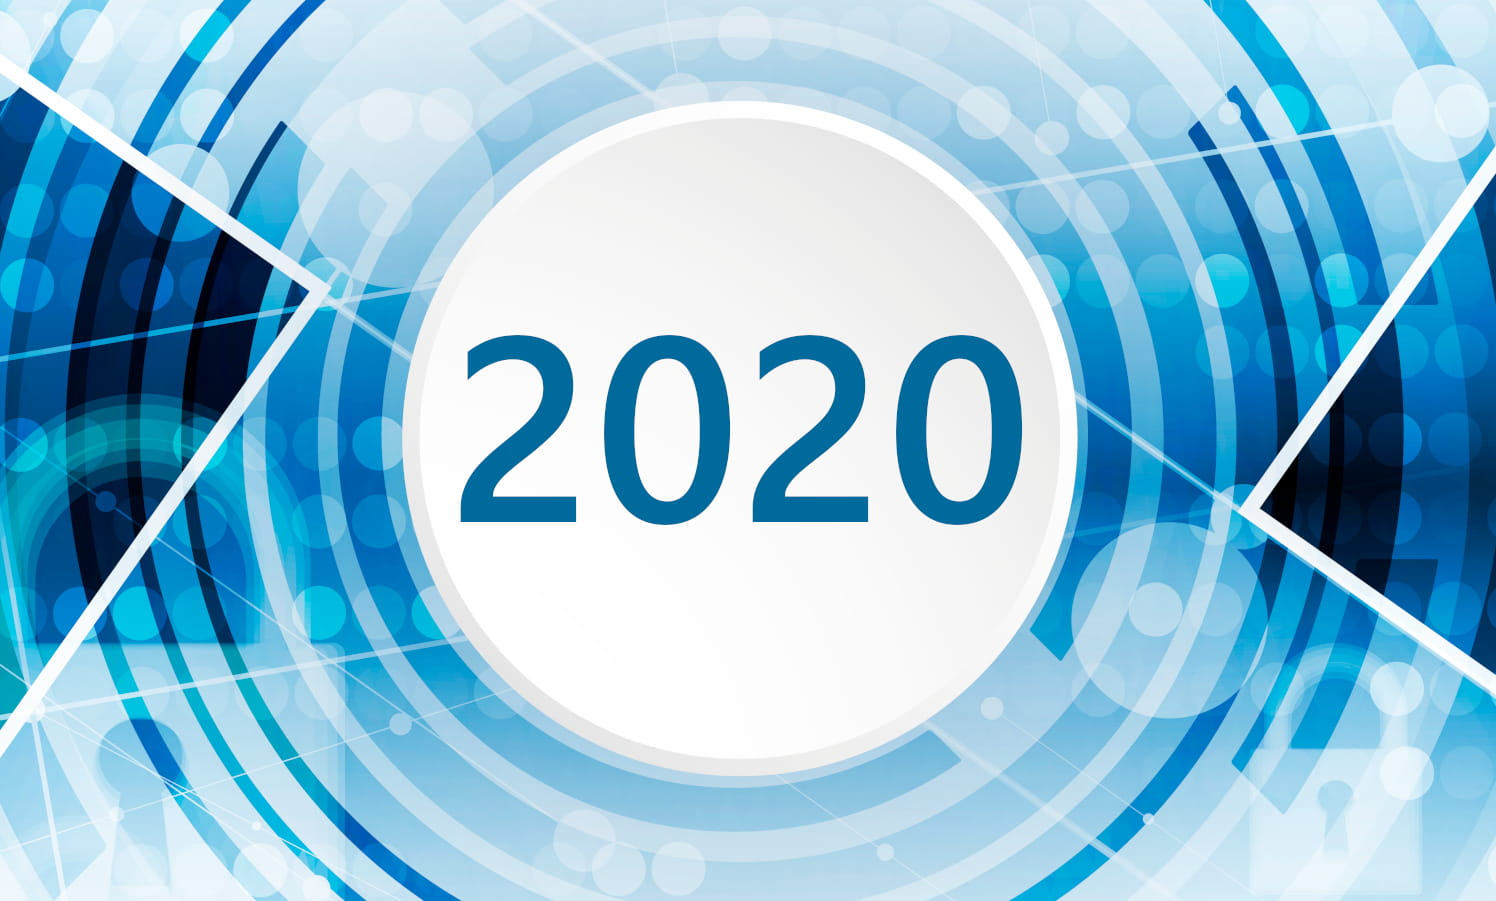 Cybersecurity in 2020… Some predictions to keep in mind